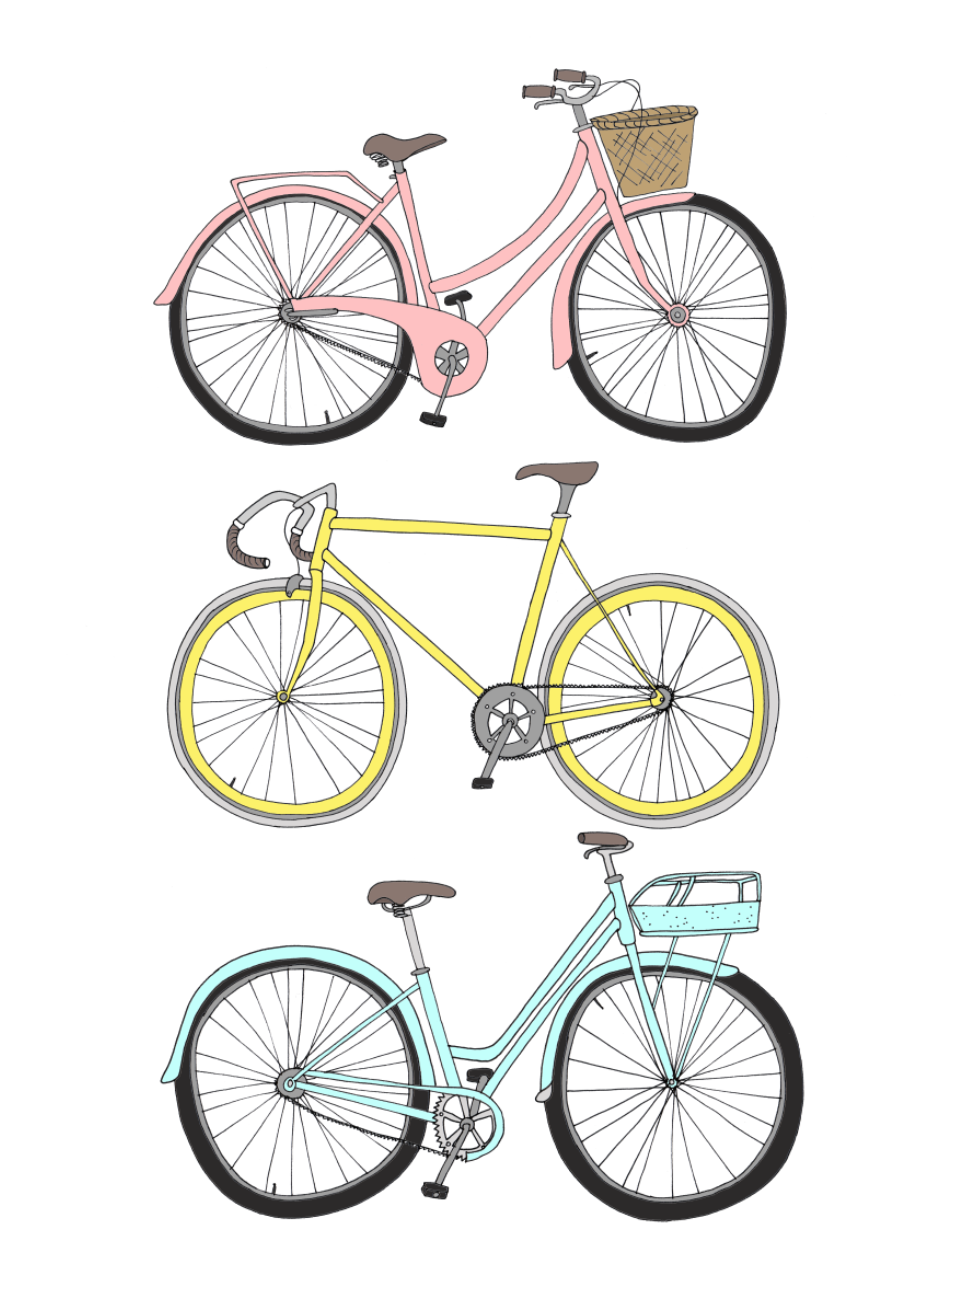 Bicycles by emmakisstina on etsy art print velo dessin - Bicyclette dessin ...